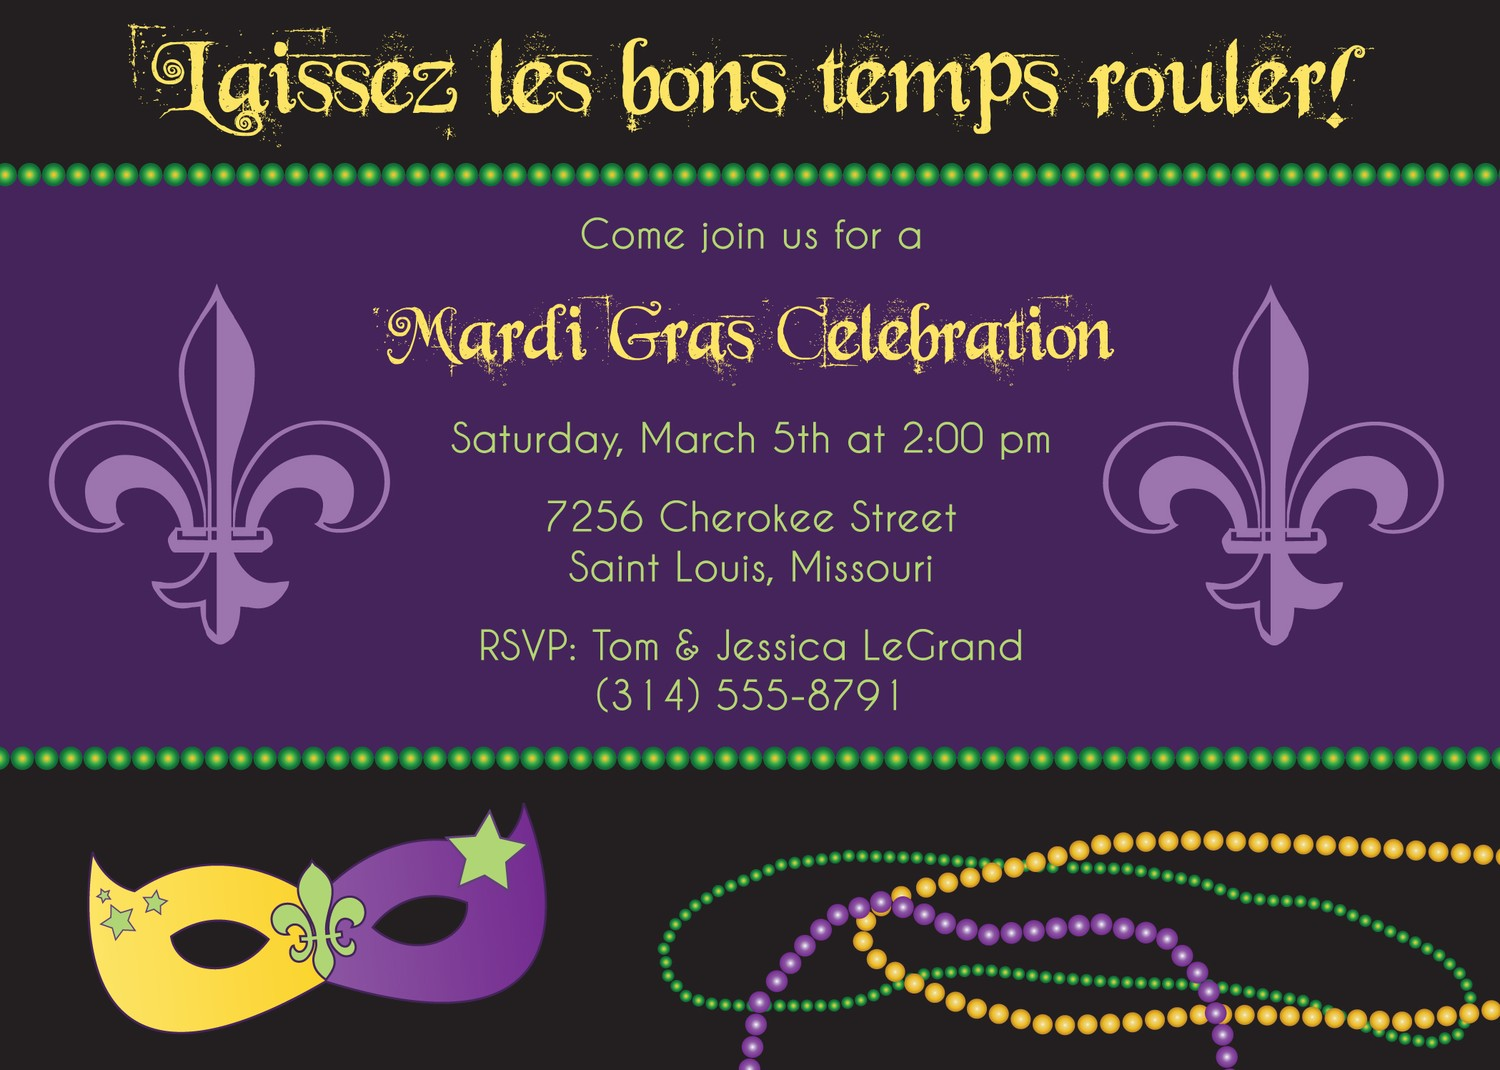 Mardi Gras Party Invitations Fat Tuesday By Starlightstl On Etsy